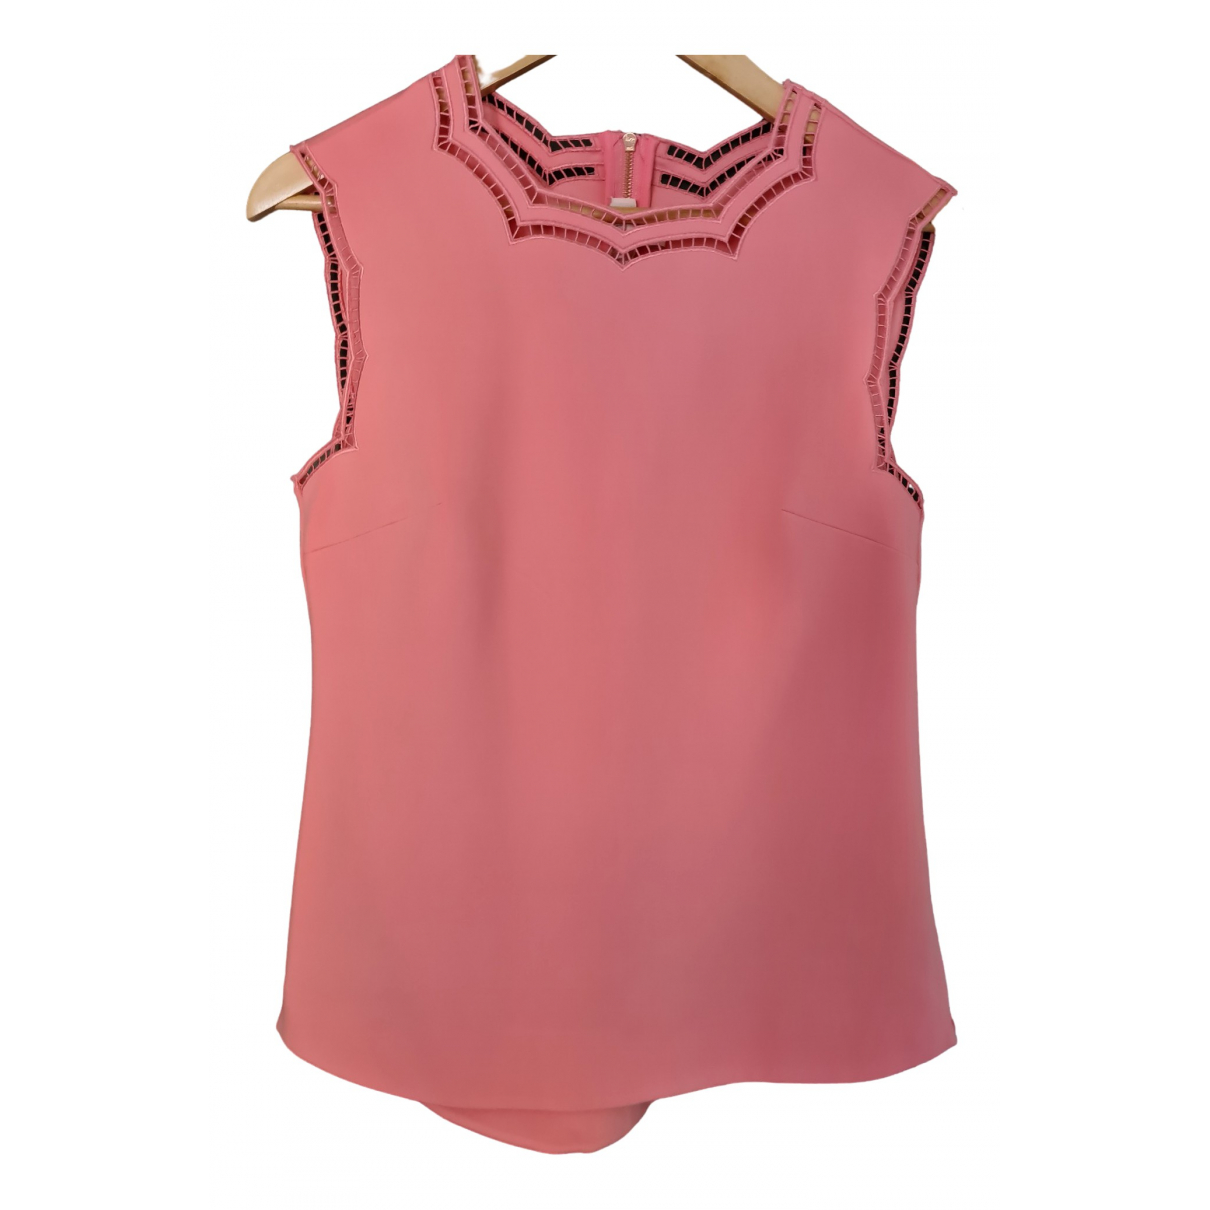 Ted Baker \N Pink  top for Women S International